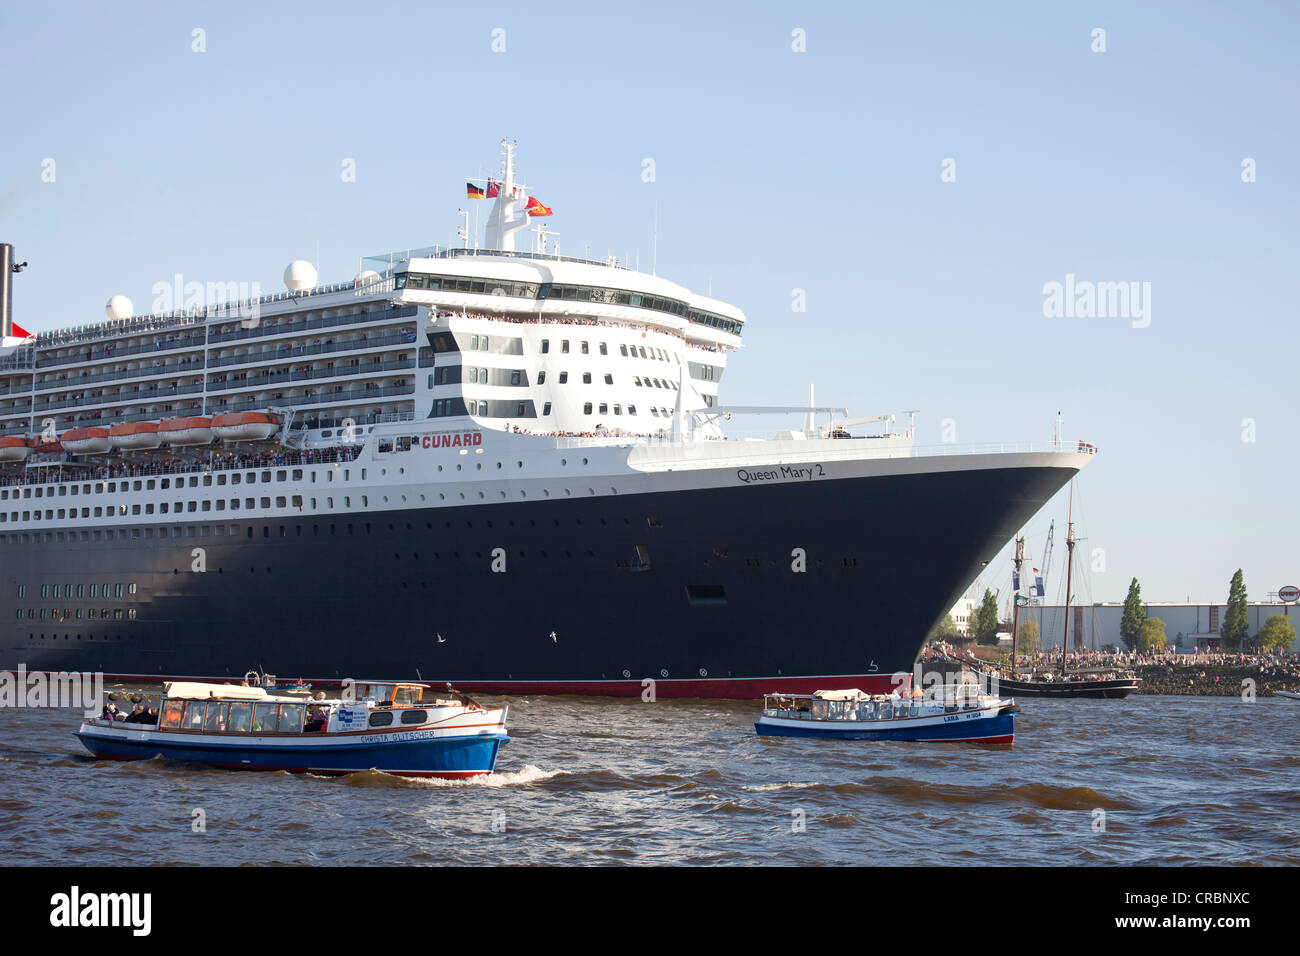 Cruise liner, Queen Elizabeth 2, during the parade of ships during the birthday celebrations for the port of Hamburg - Stock Image